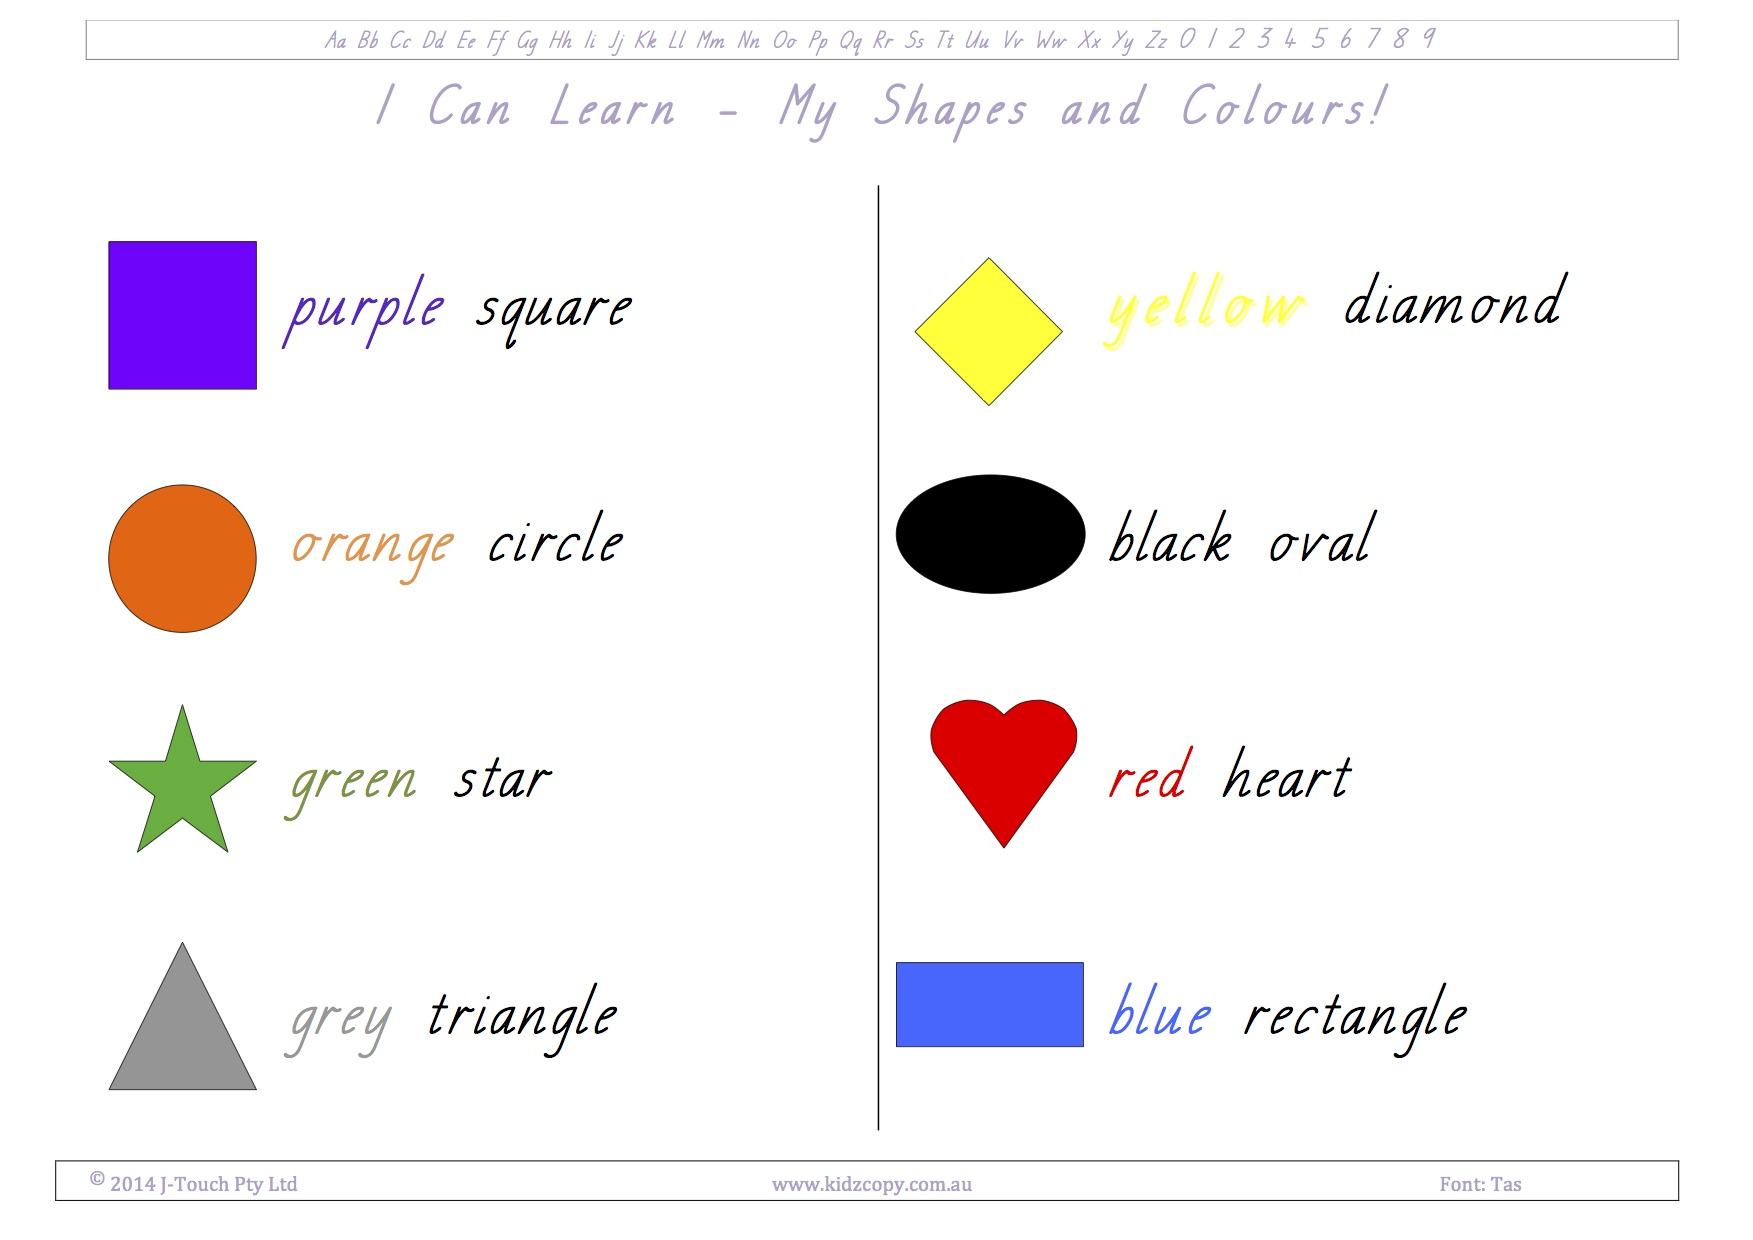 I Can Learn - My Shapes and Colors